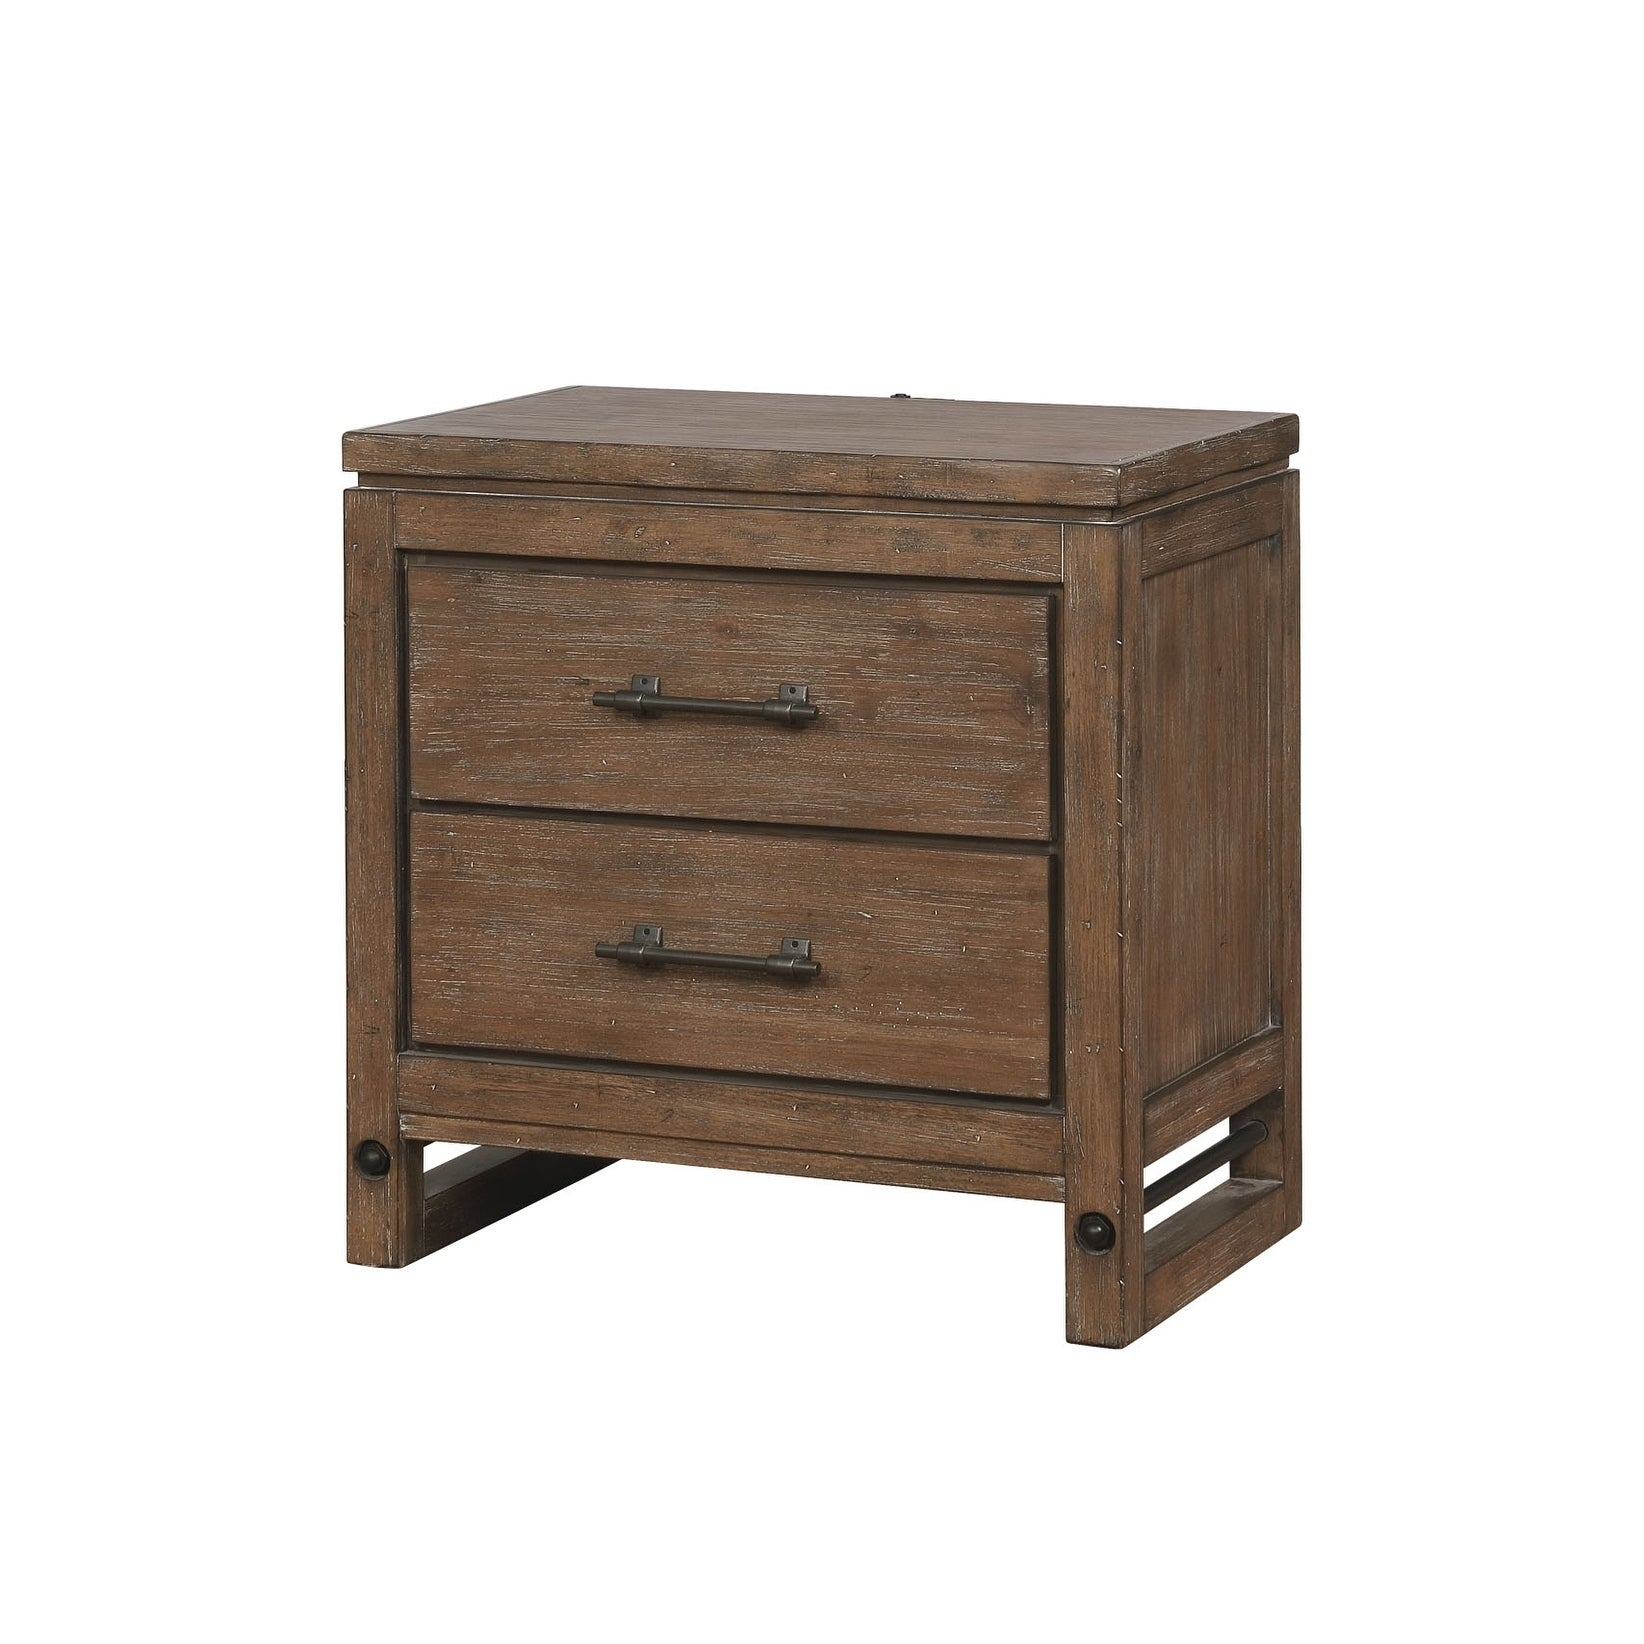 Round Rock Rustic Nightstand Usb Led